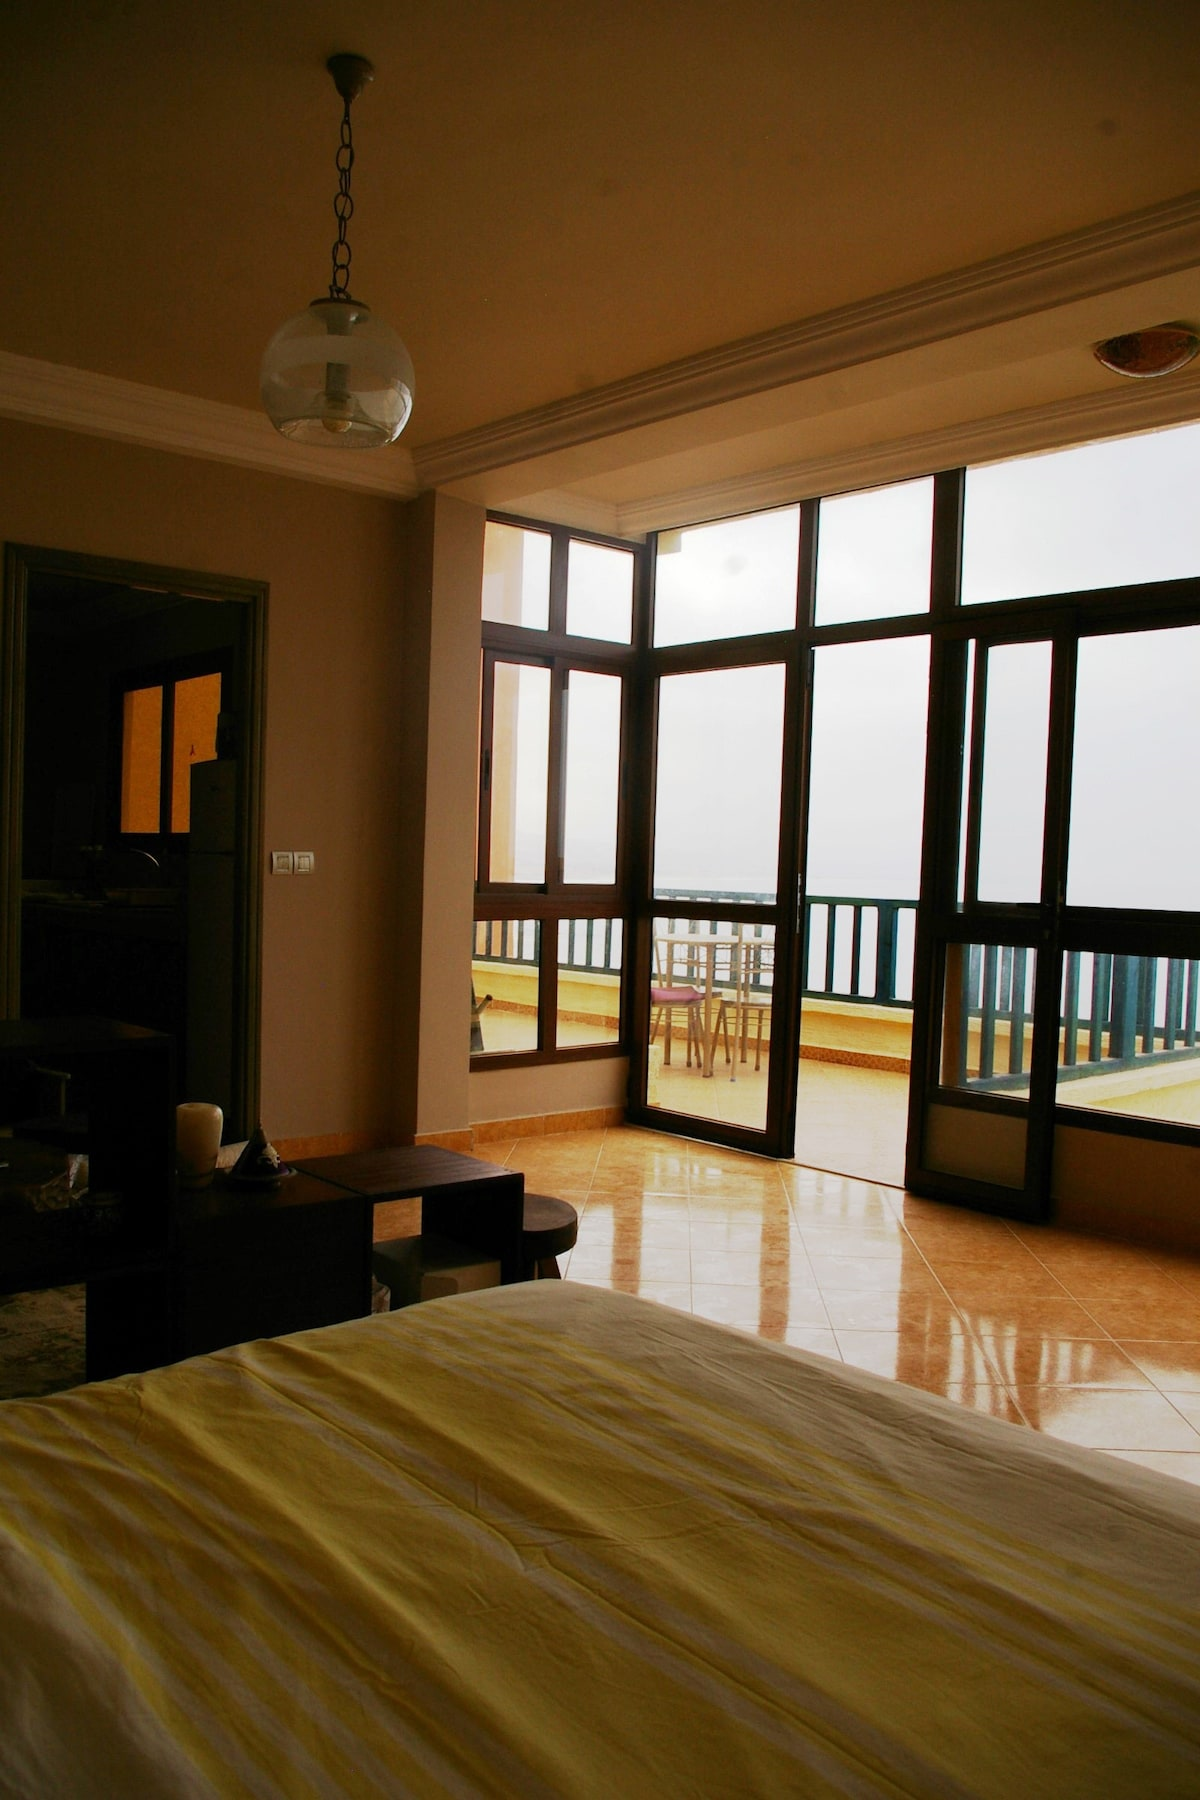 The view and terrace from the bed.